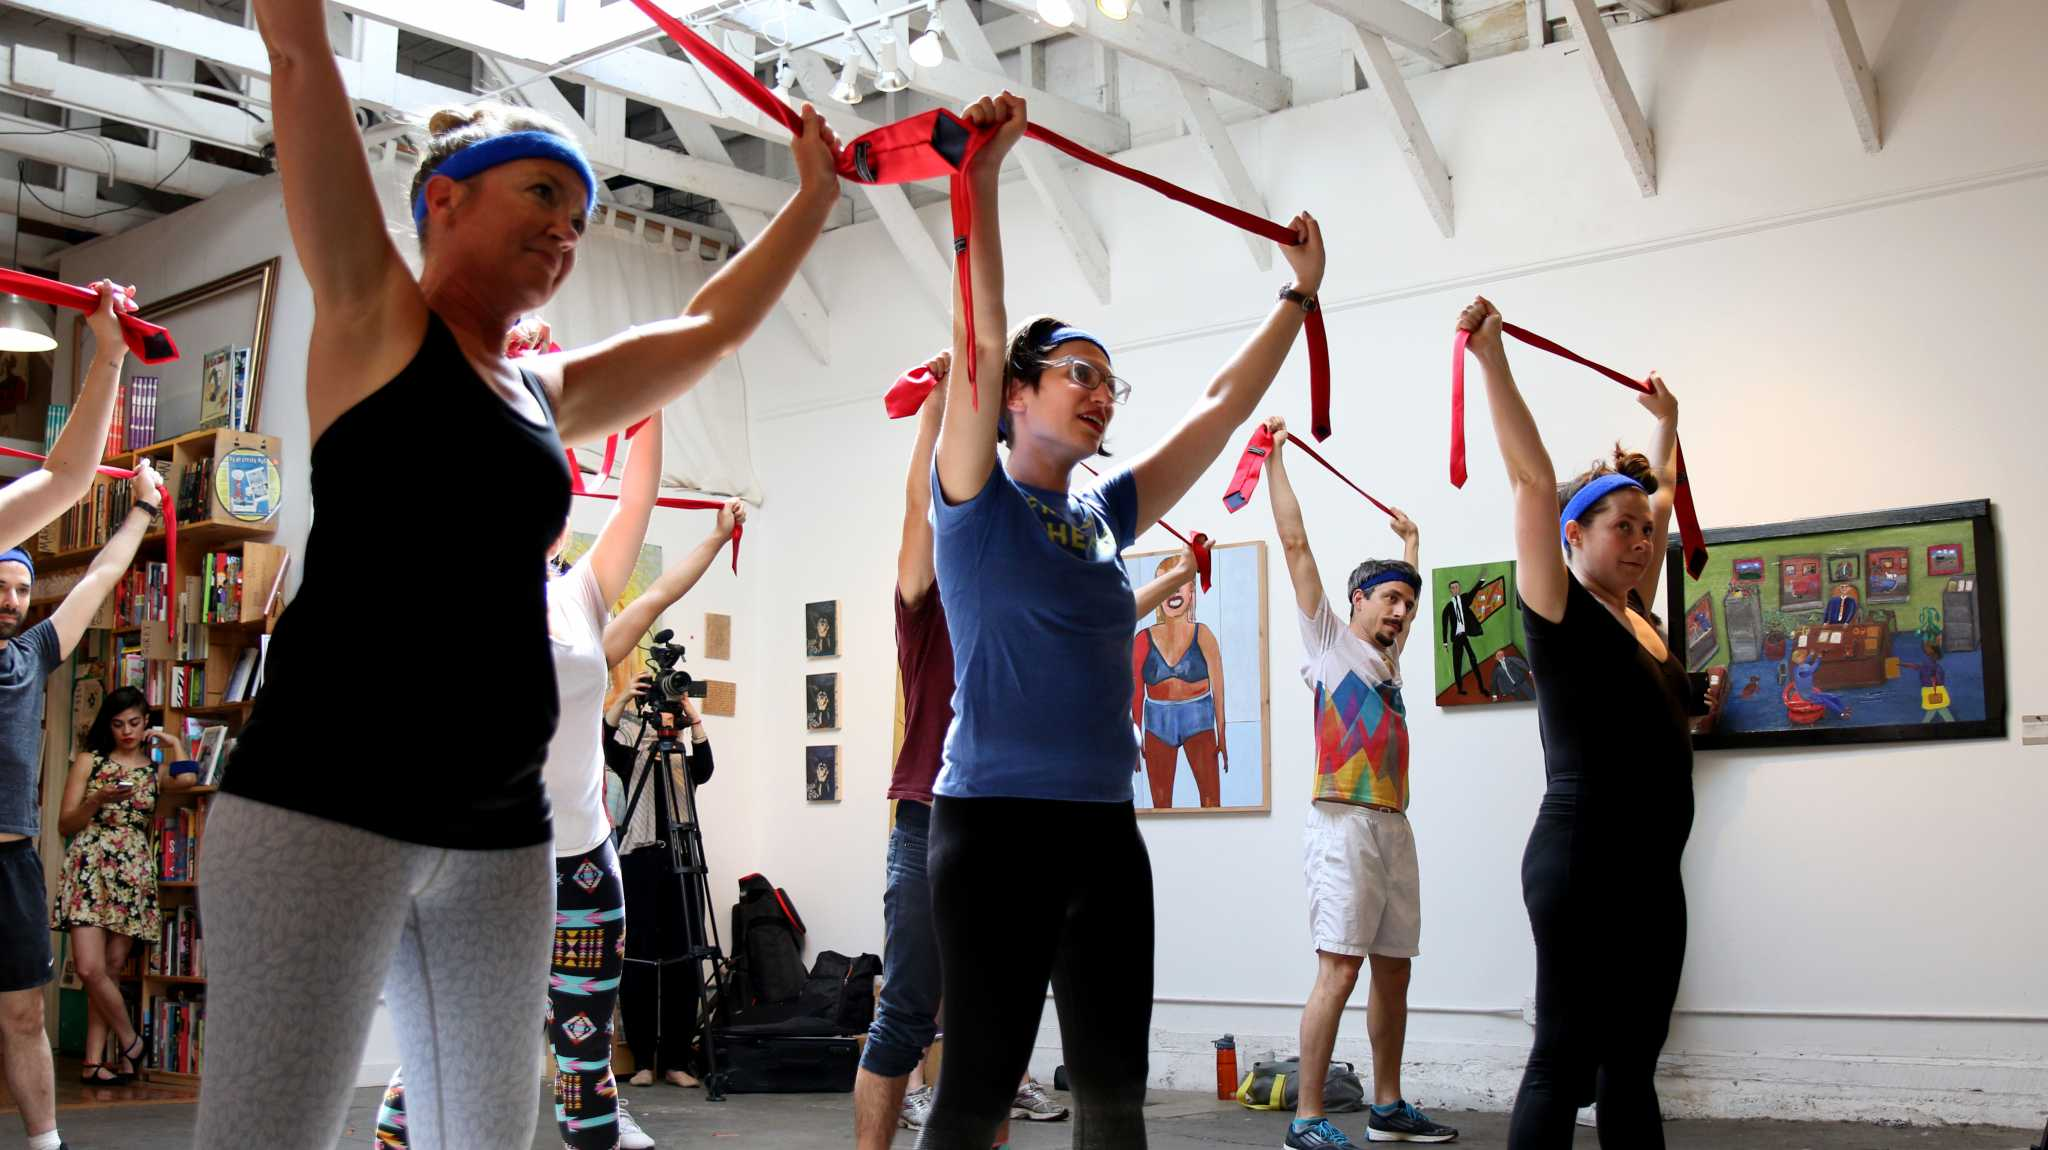 Anti Trump Aerobic class participants stretching with ties at Alley Cat Bookstore in SF on April.30, 2017 (Kyler Knox/Xpress)